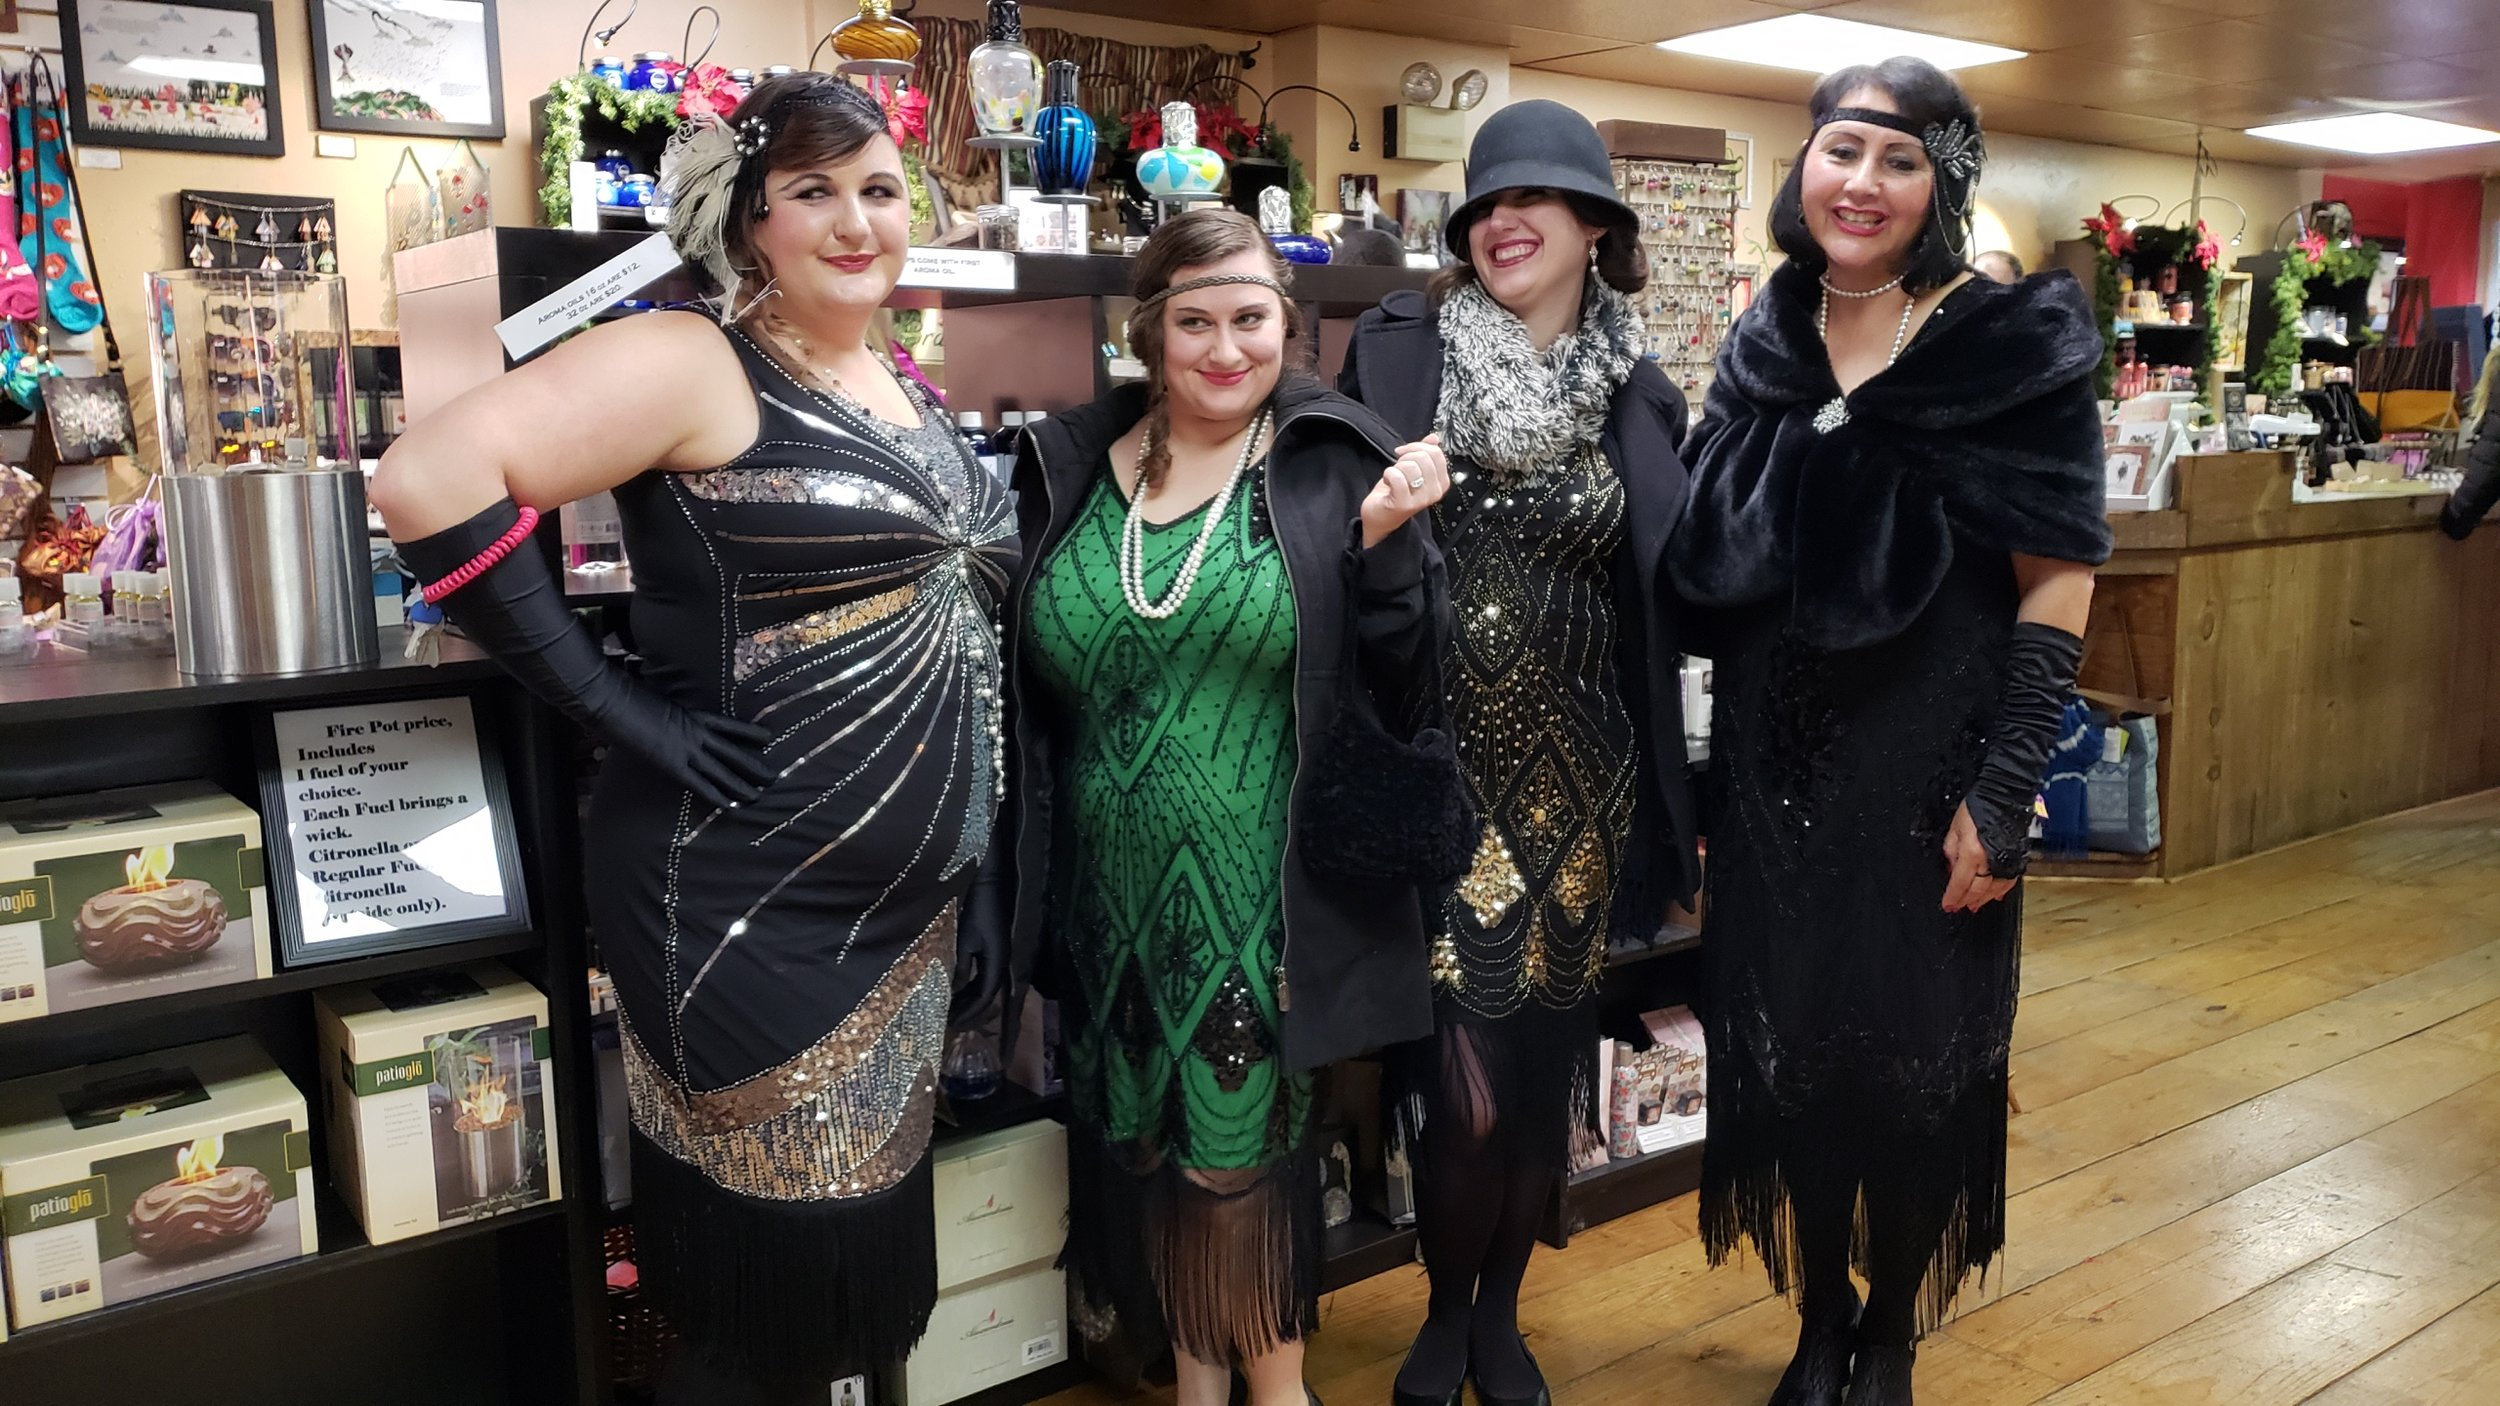 Roaring 20's at A&A's Village Treasures